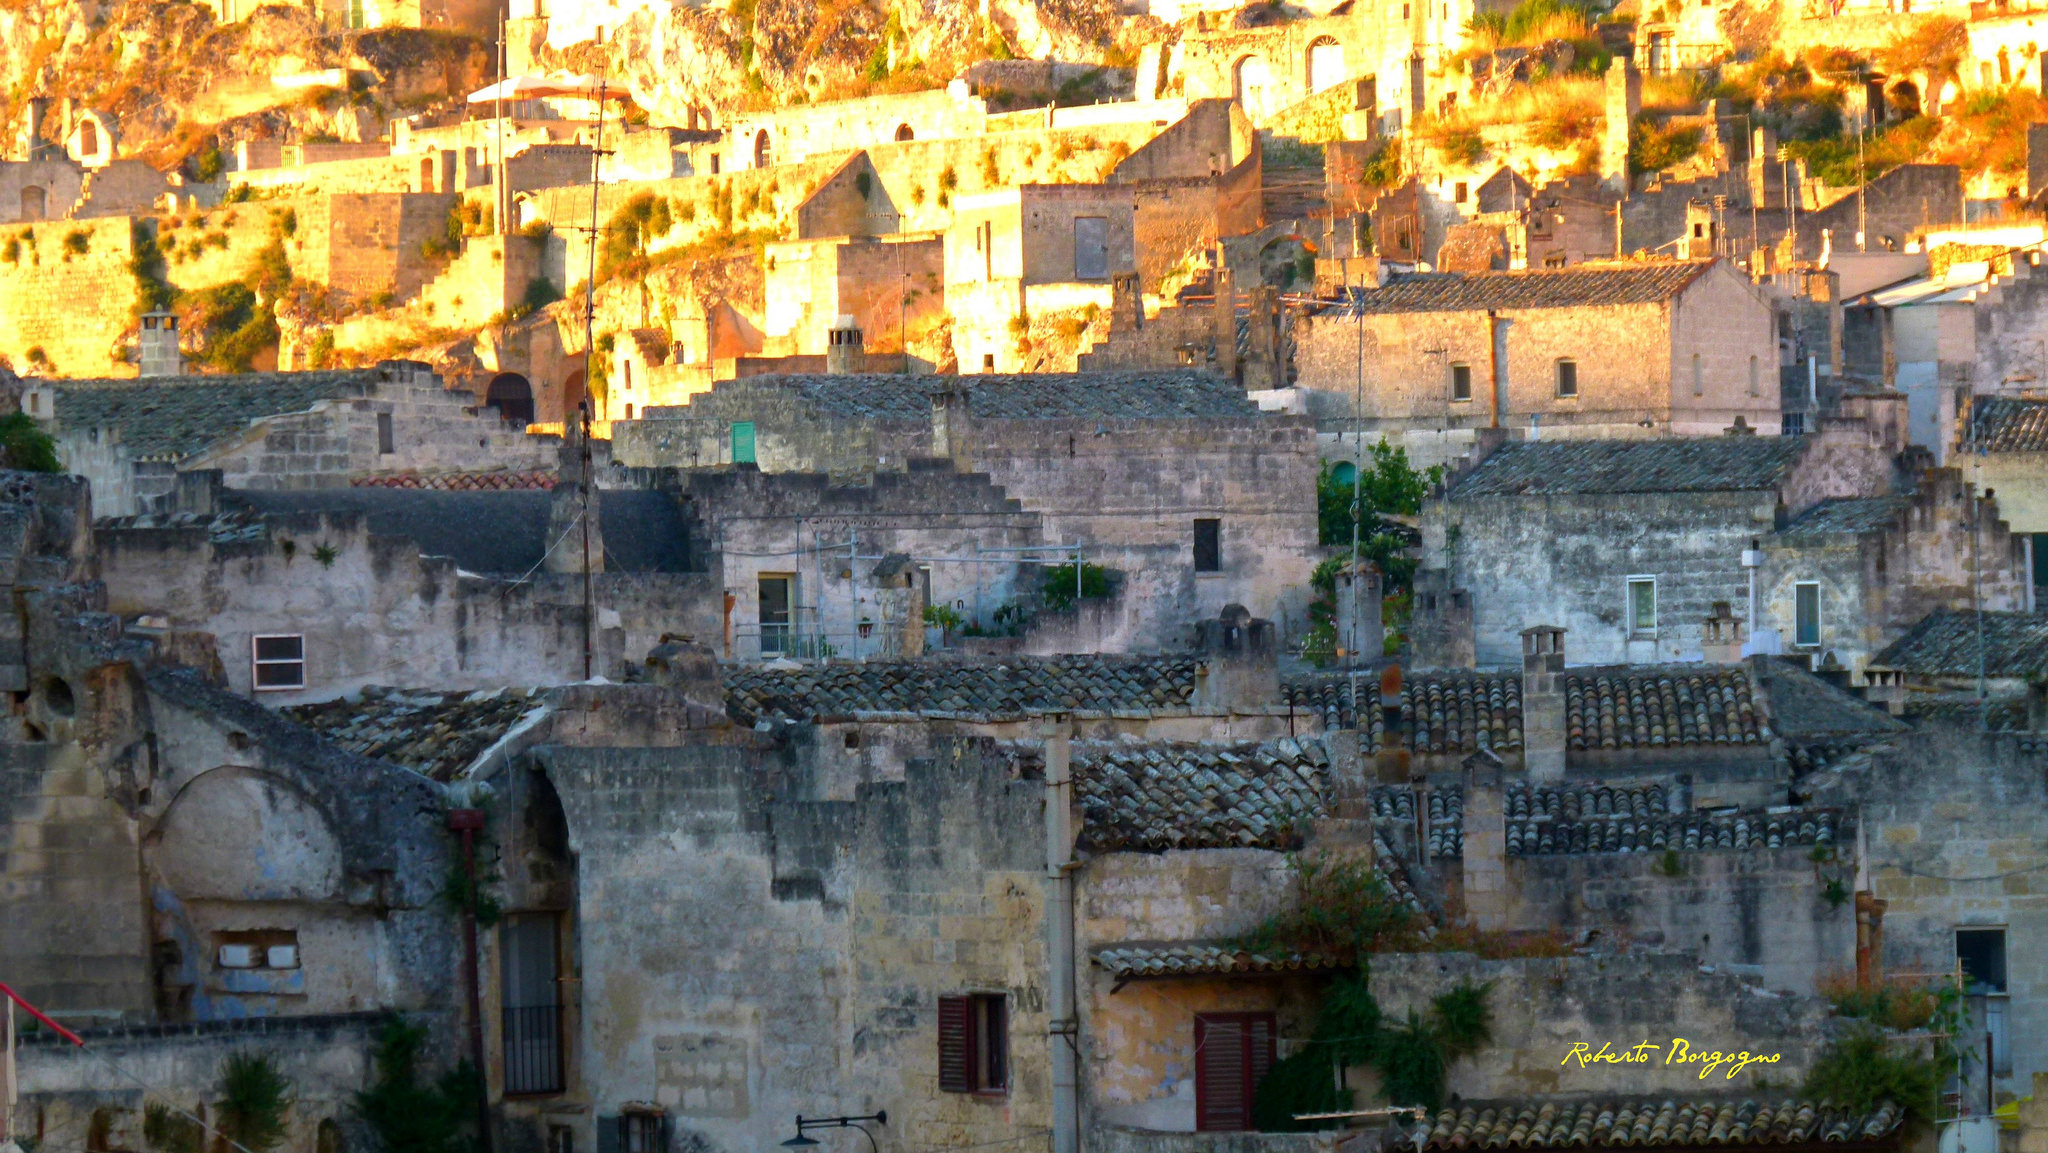 After sampling a dish of Southern Italian sweets, take a walking tour of the nearby sights.L'alba sui sassi di Matera (Dawn on Matera's OldTown) by BORGHY52.